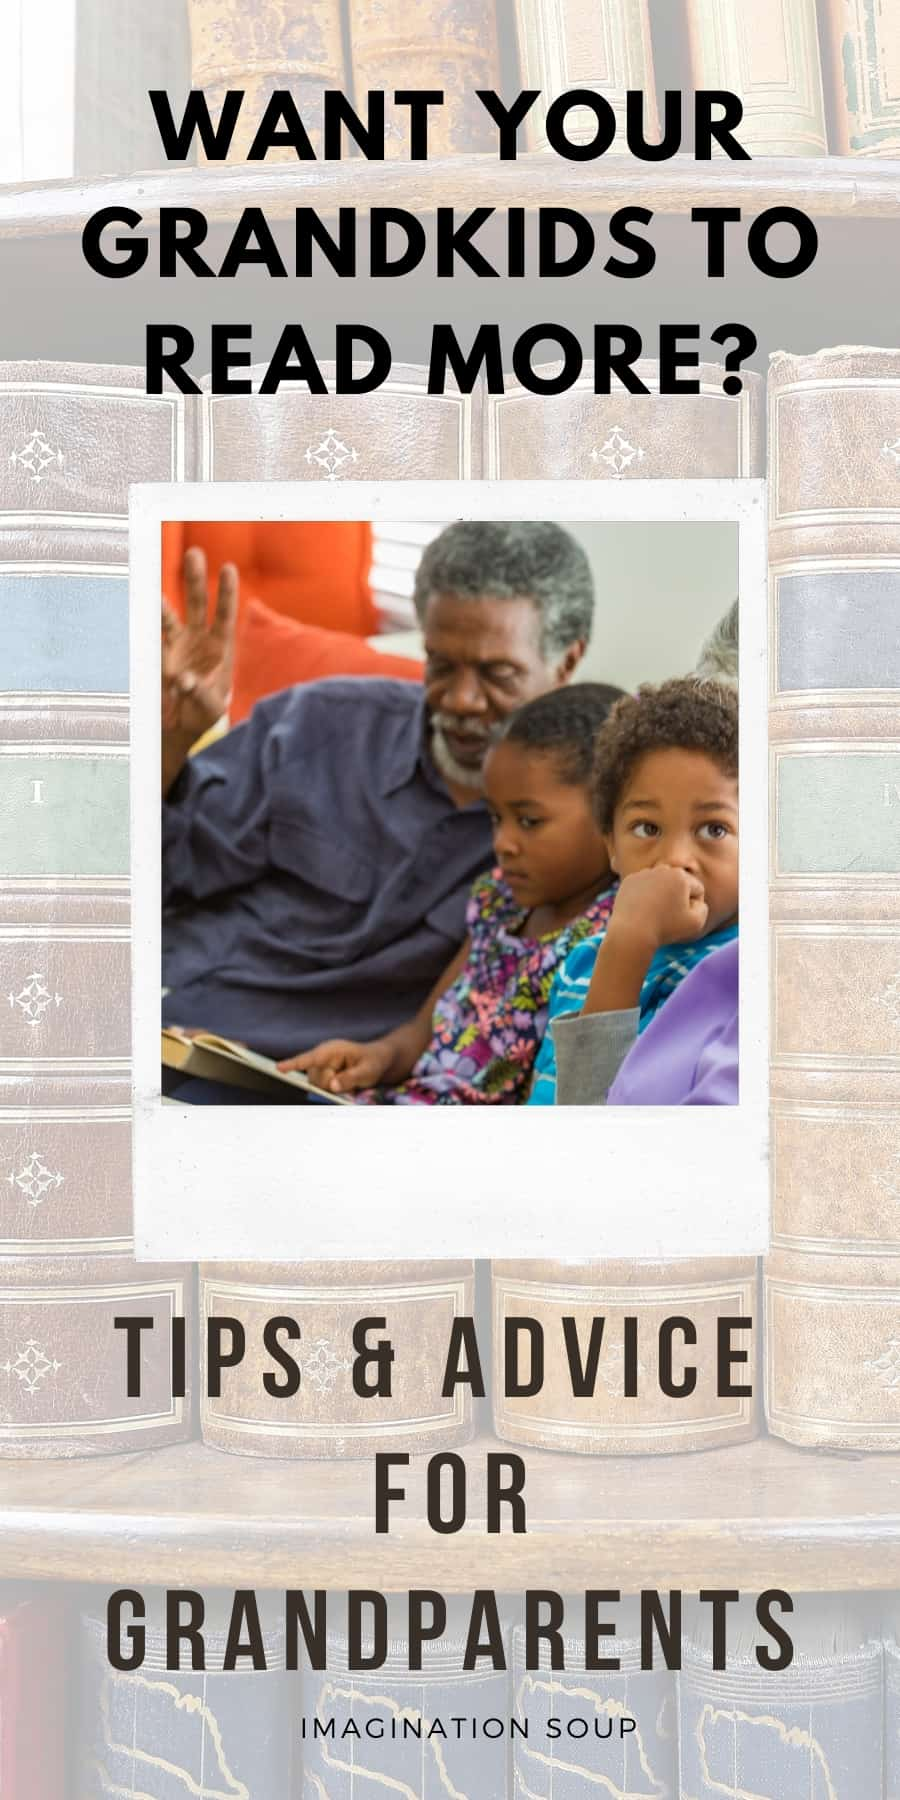 Tips for Grandparents Who Want Their Grandkids to Read